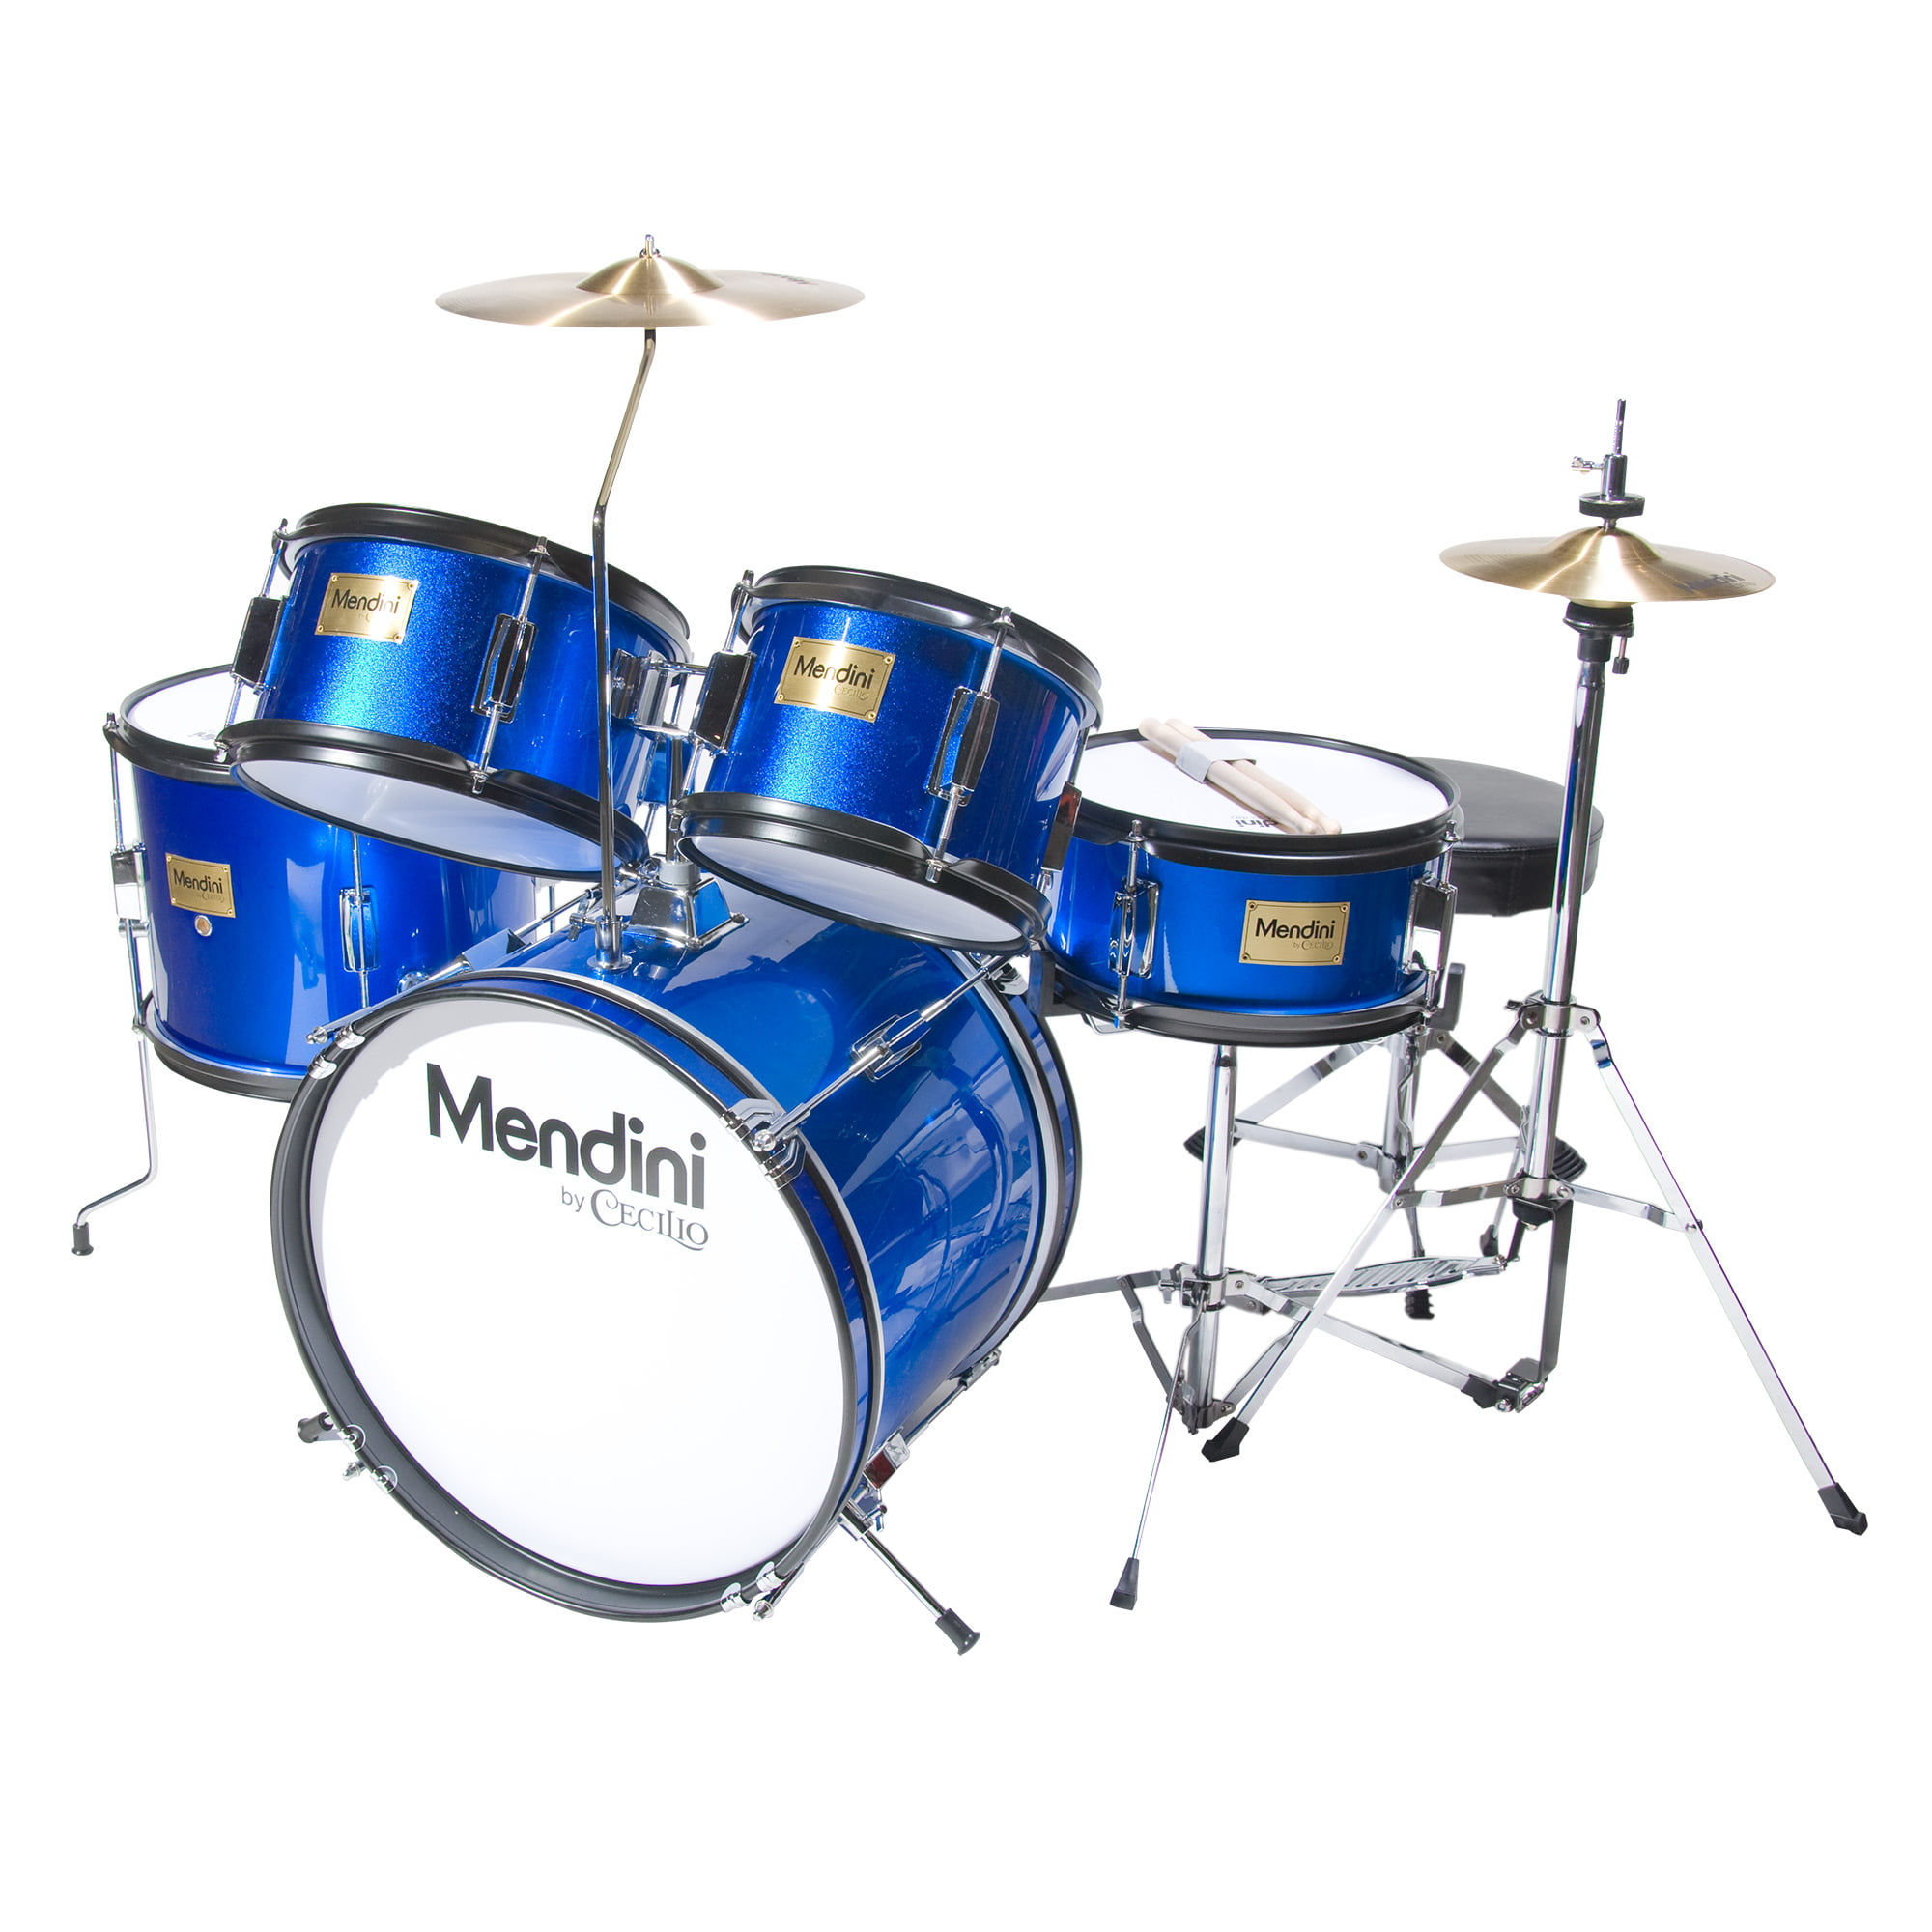 "Mendini by Cecilio 16"" 5-Piece Complete Kids   Junior Drum Set with Adjustable... by Cecilio Musical Instruments"